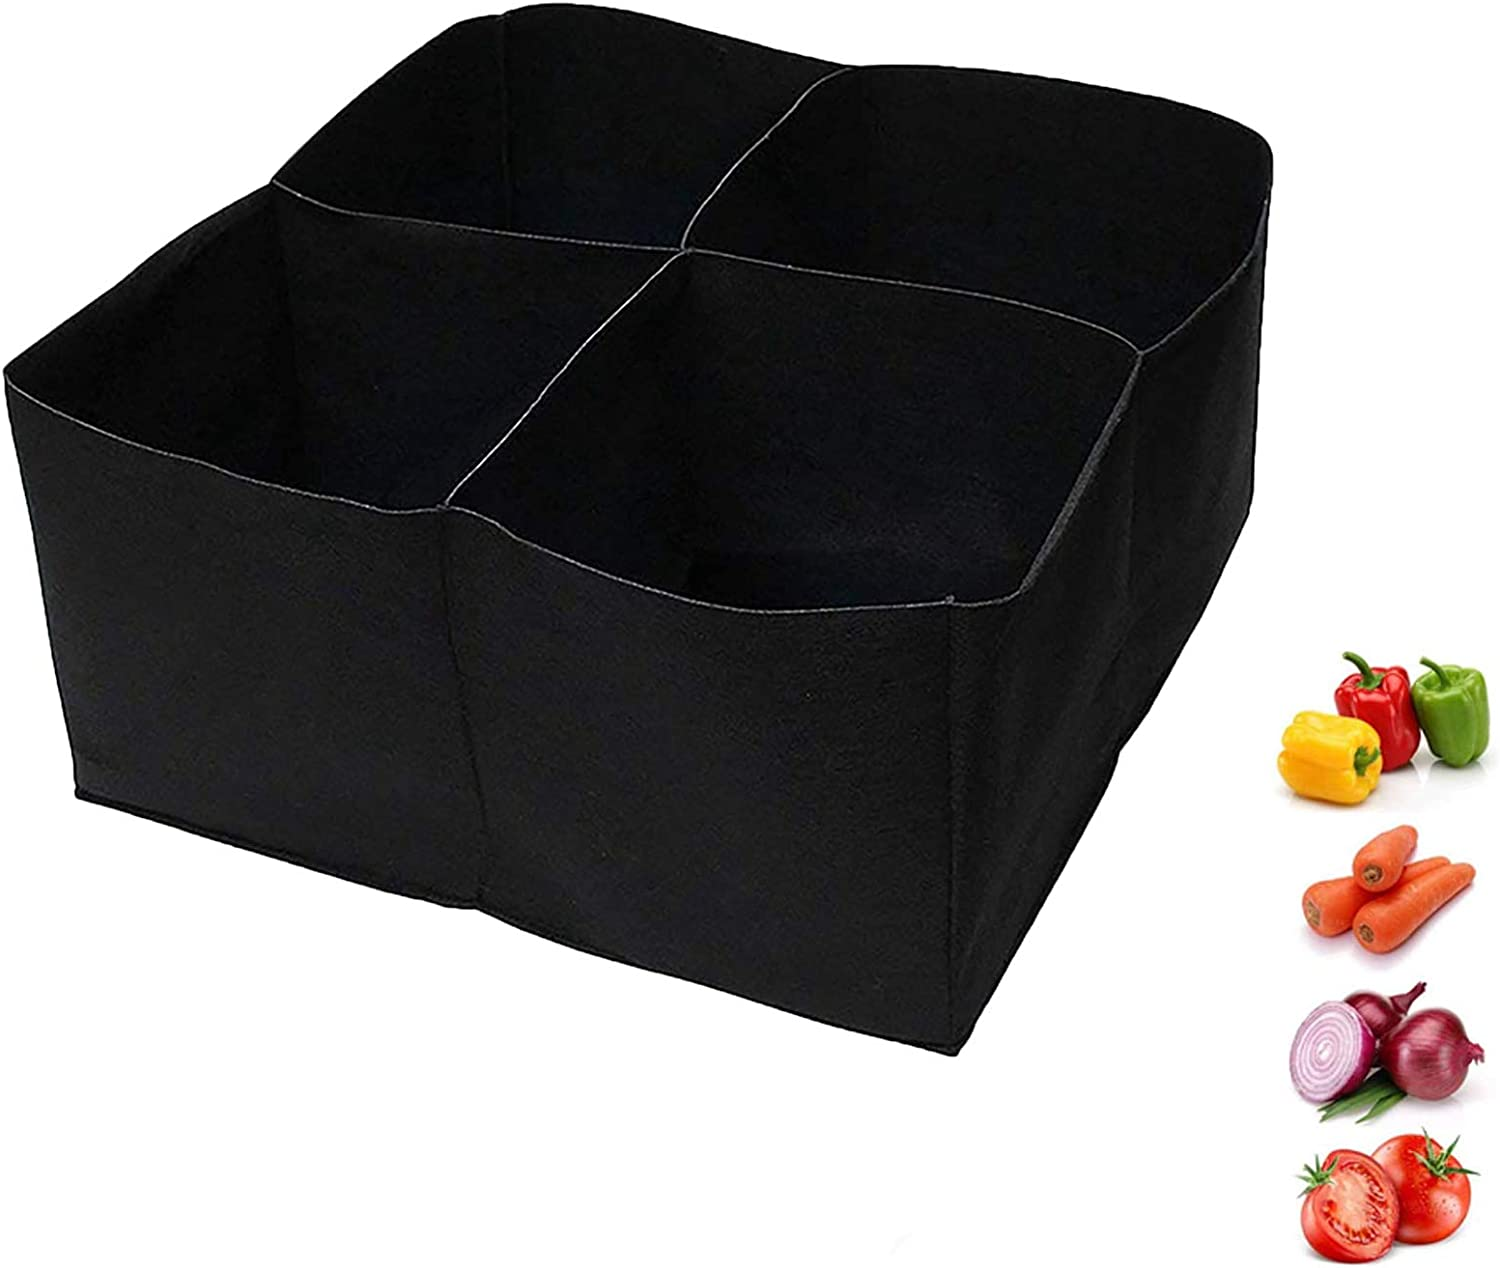 Genericaa 4 Divided Square Grow Planter Bag, 30 Gallon Premium Garden Planter Fabric Bed, Durable Thick Bag for Indoor and Outdoor, Grow Pot for Carrot Onion Herb Flower Vegetable Plants